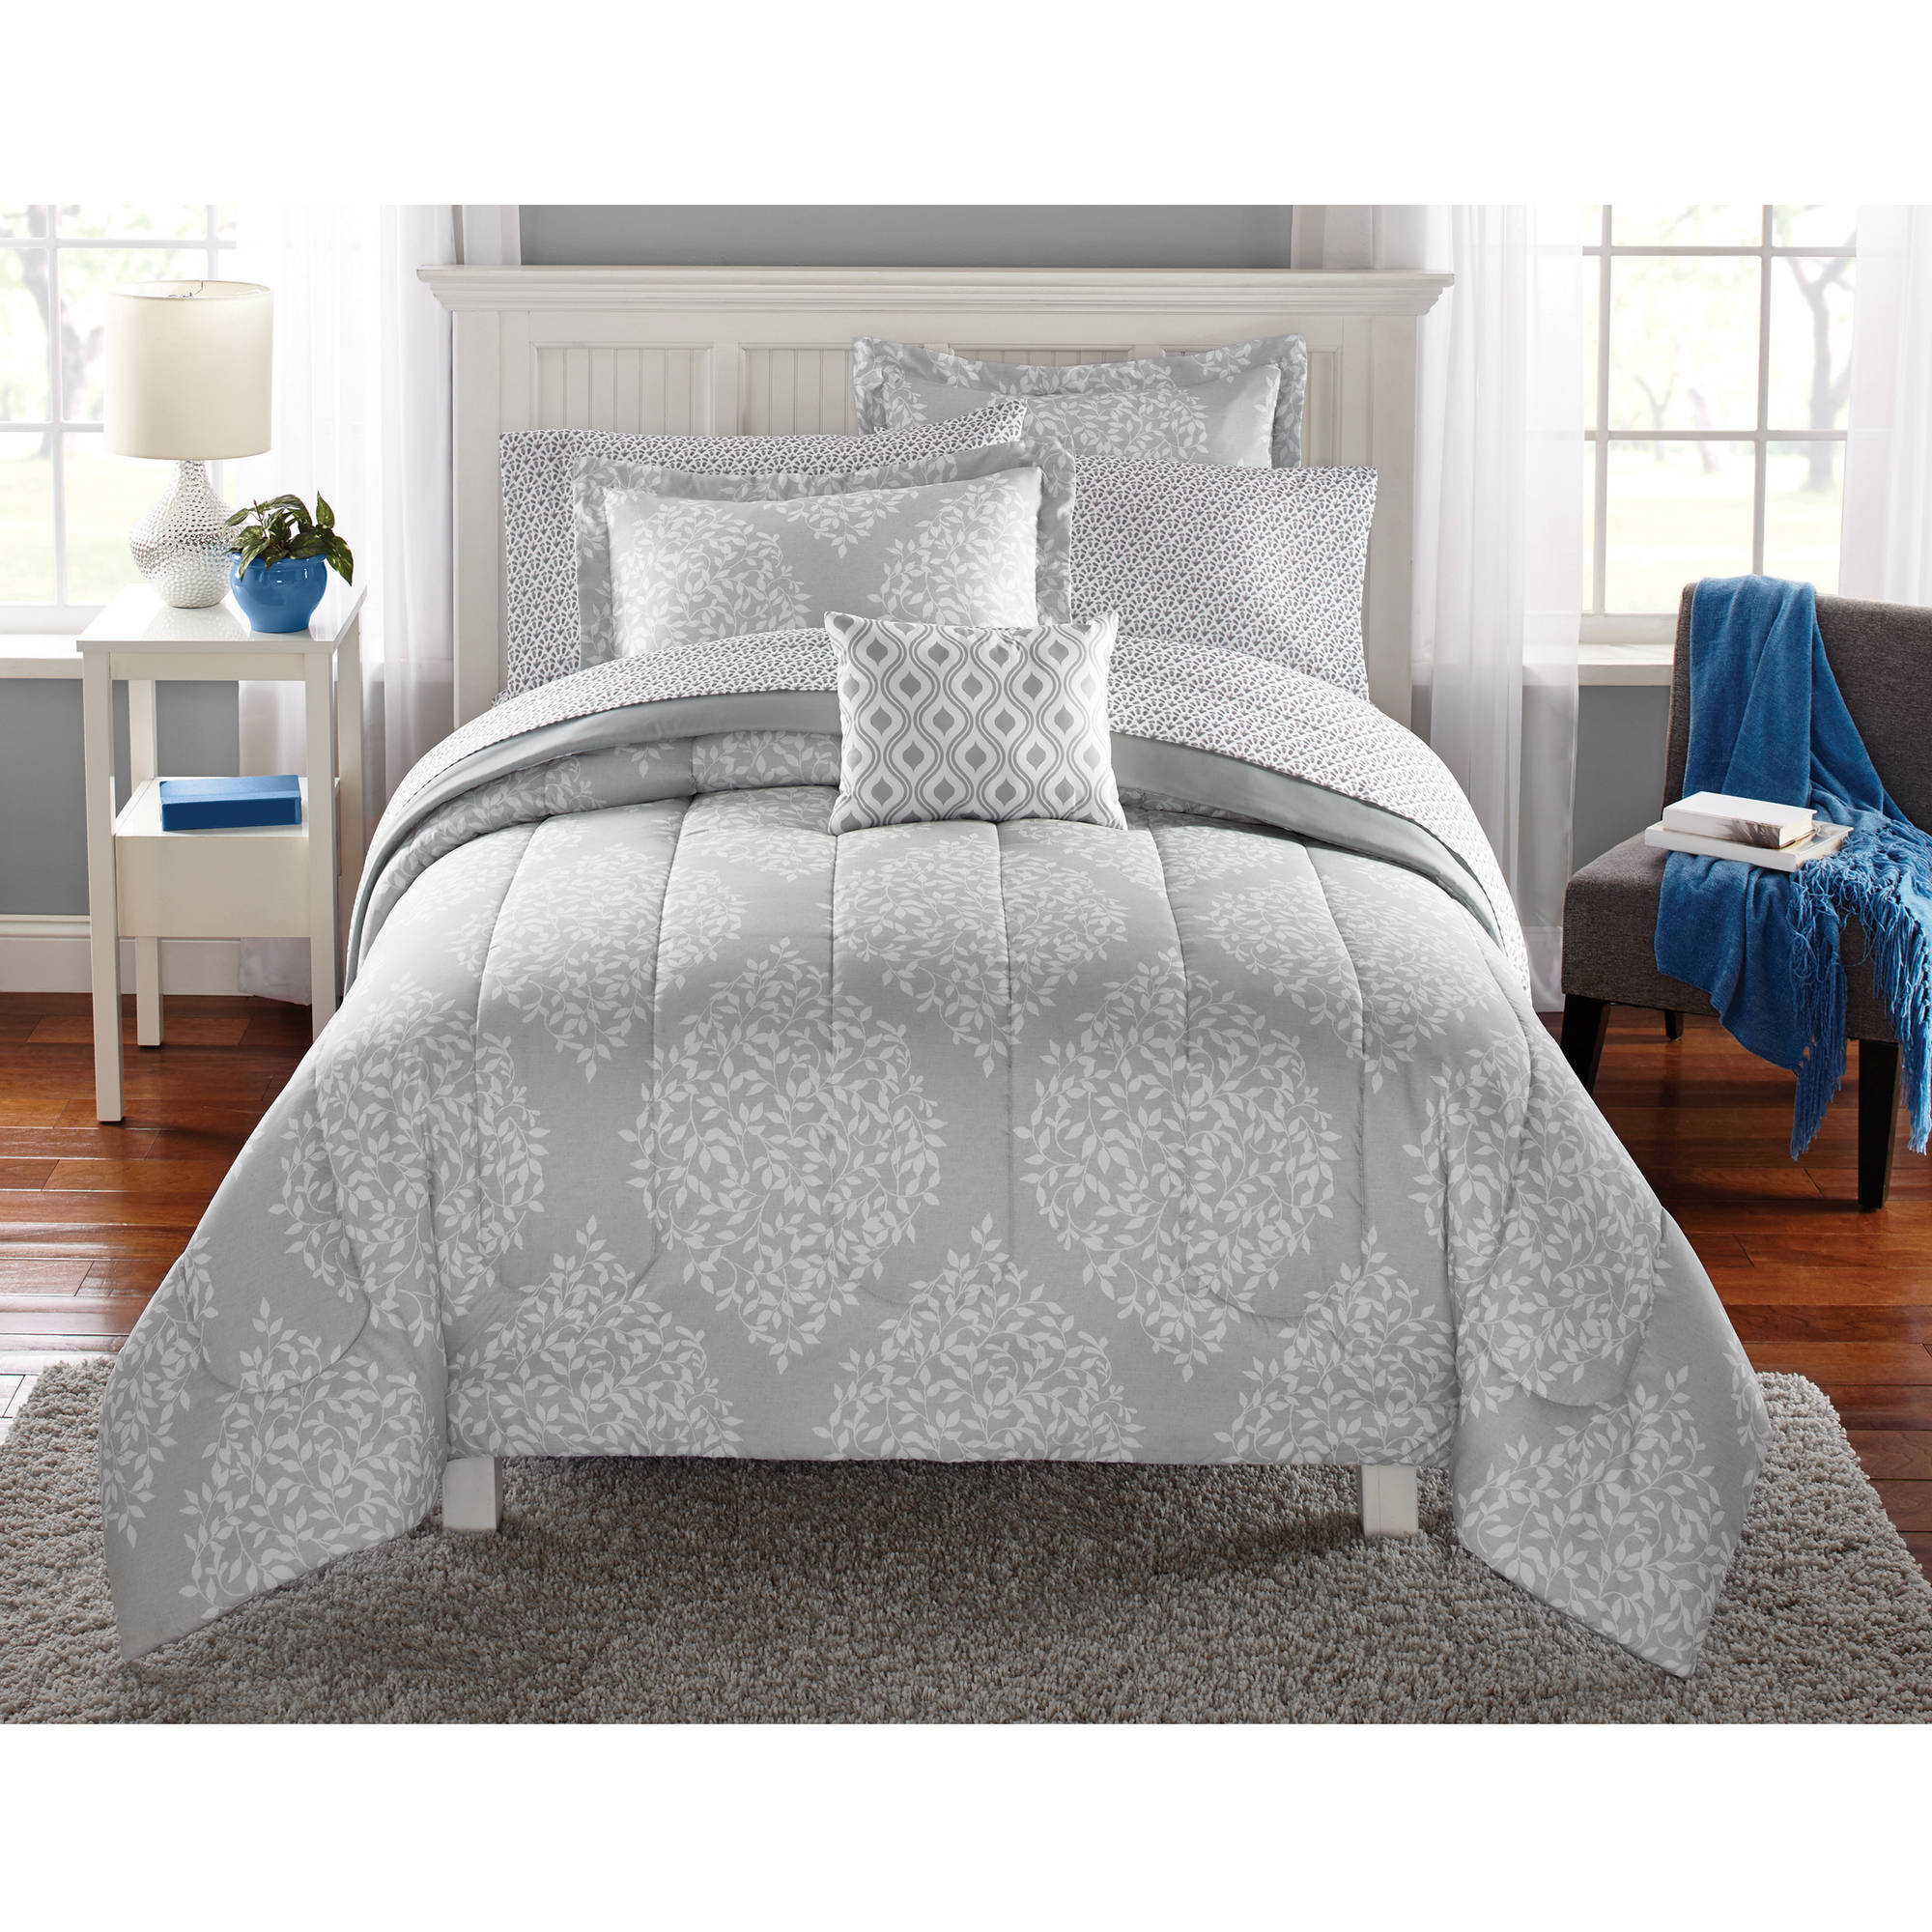 sets cover luxury designer bed wamsutta quilt duvet product bag sheets king geometric silver grey size a sanding queen doona bedspreads set bedding tencel in